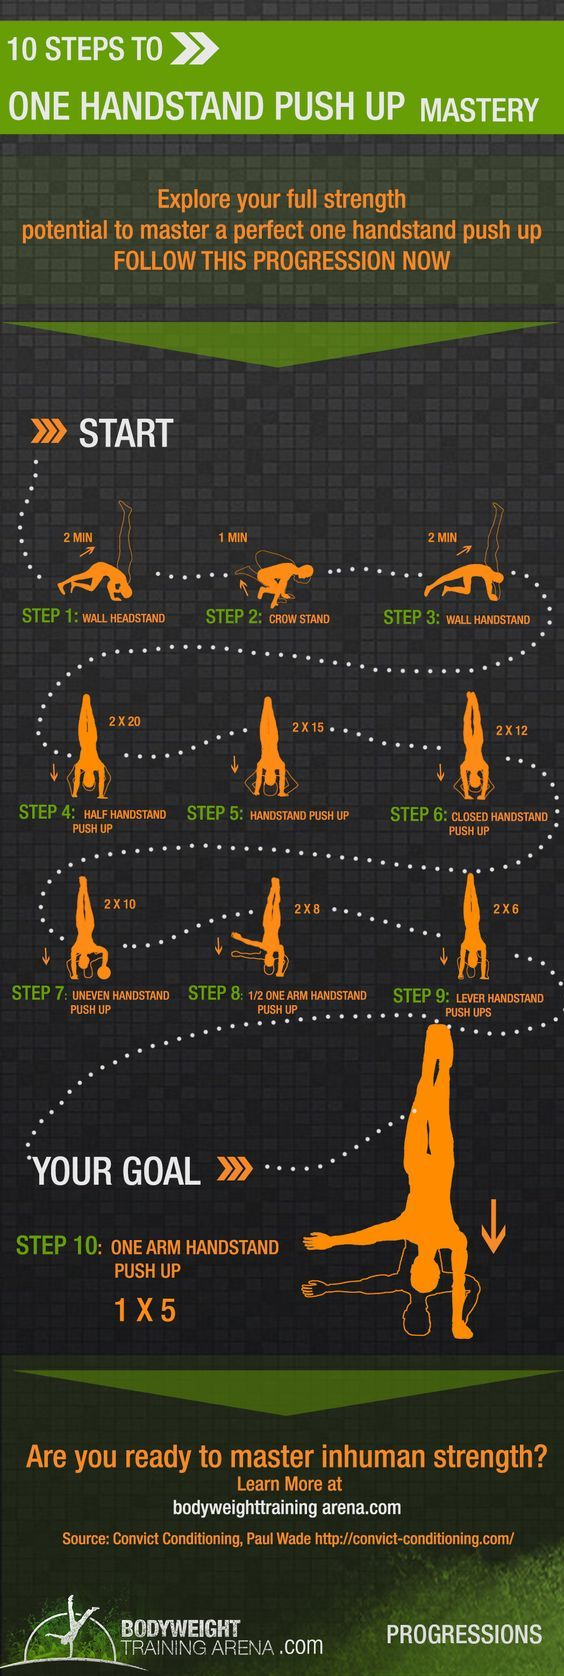 Convict Conditioning One Handstand Pushup Progression: